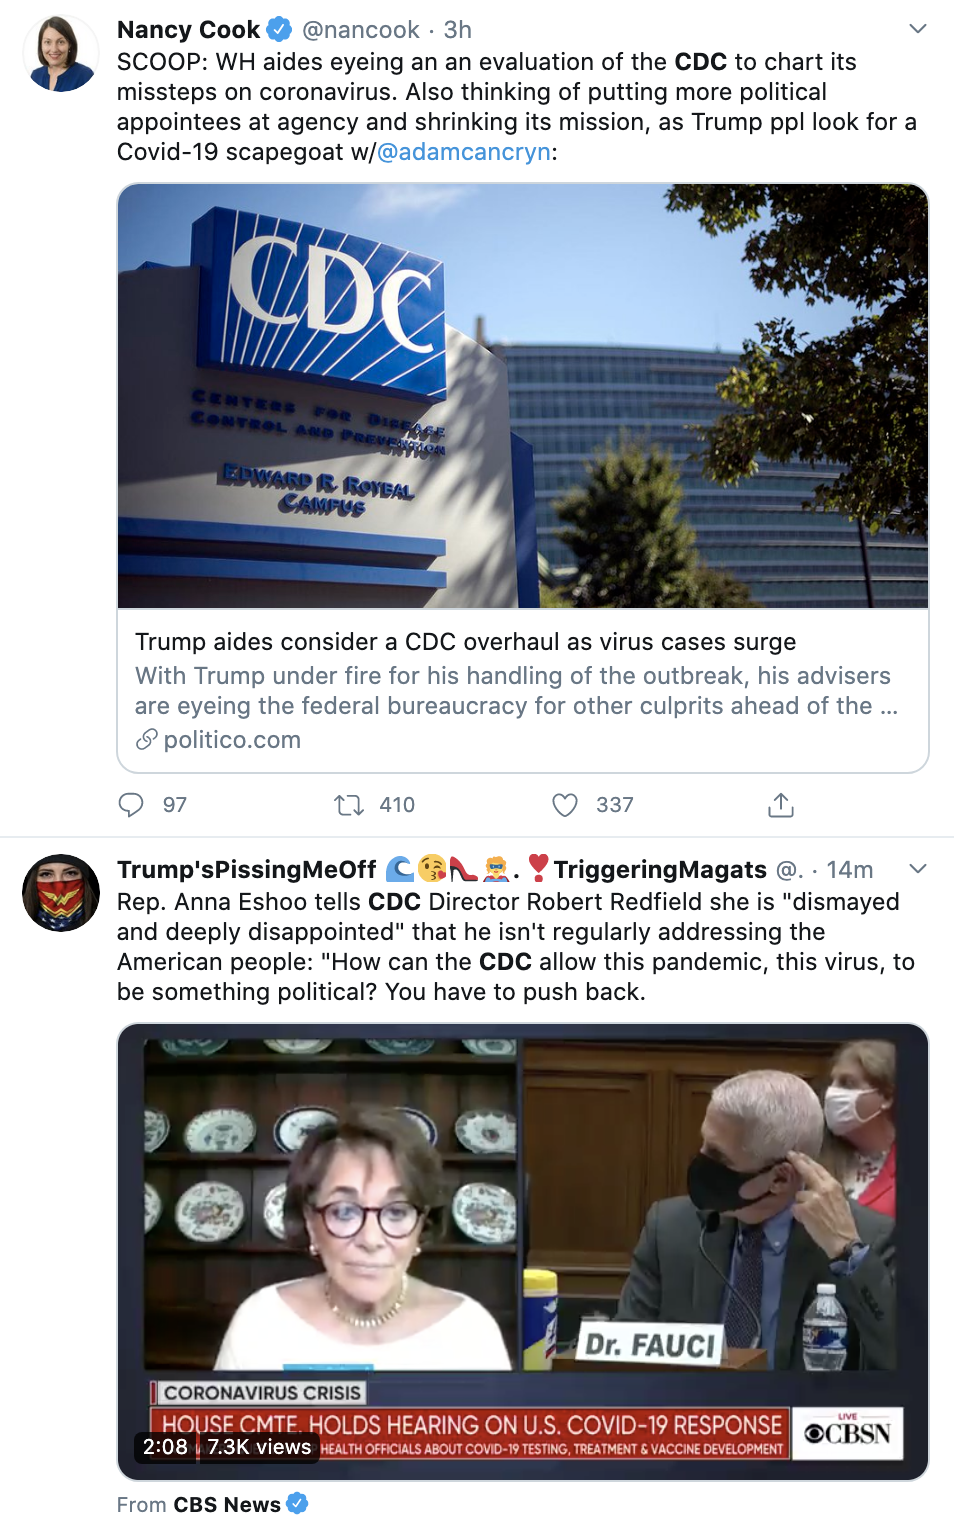 Screen-Shot-2020-06-23-at-11.57.49-AM Trump Set To Investigate CDC As Political Scapegoat For COVID-19: report Corruption Economy Featured Politics Top Stories